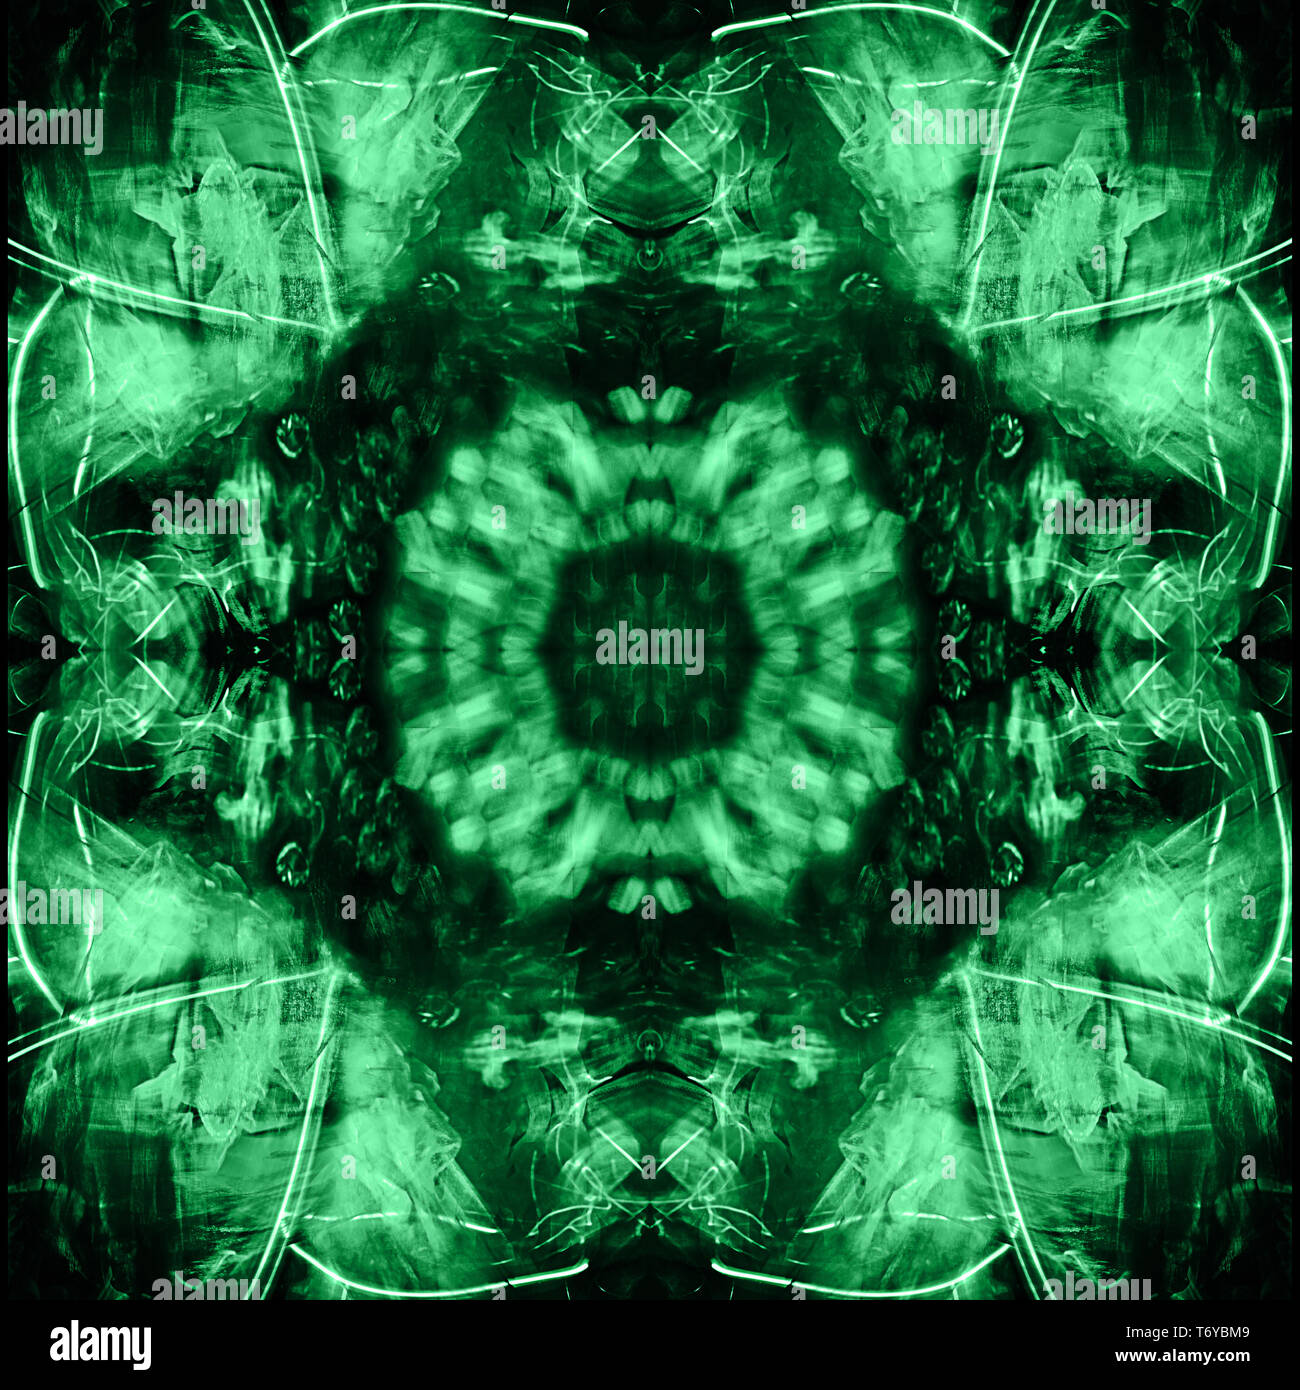 Kaleidoscopic psychedelic pattern. Abstract symmetric luminous b - Stock Image